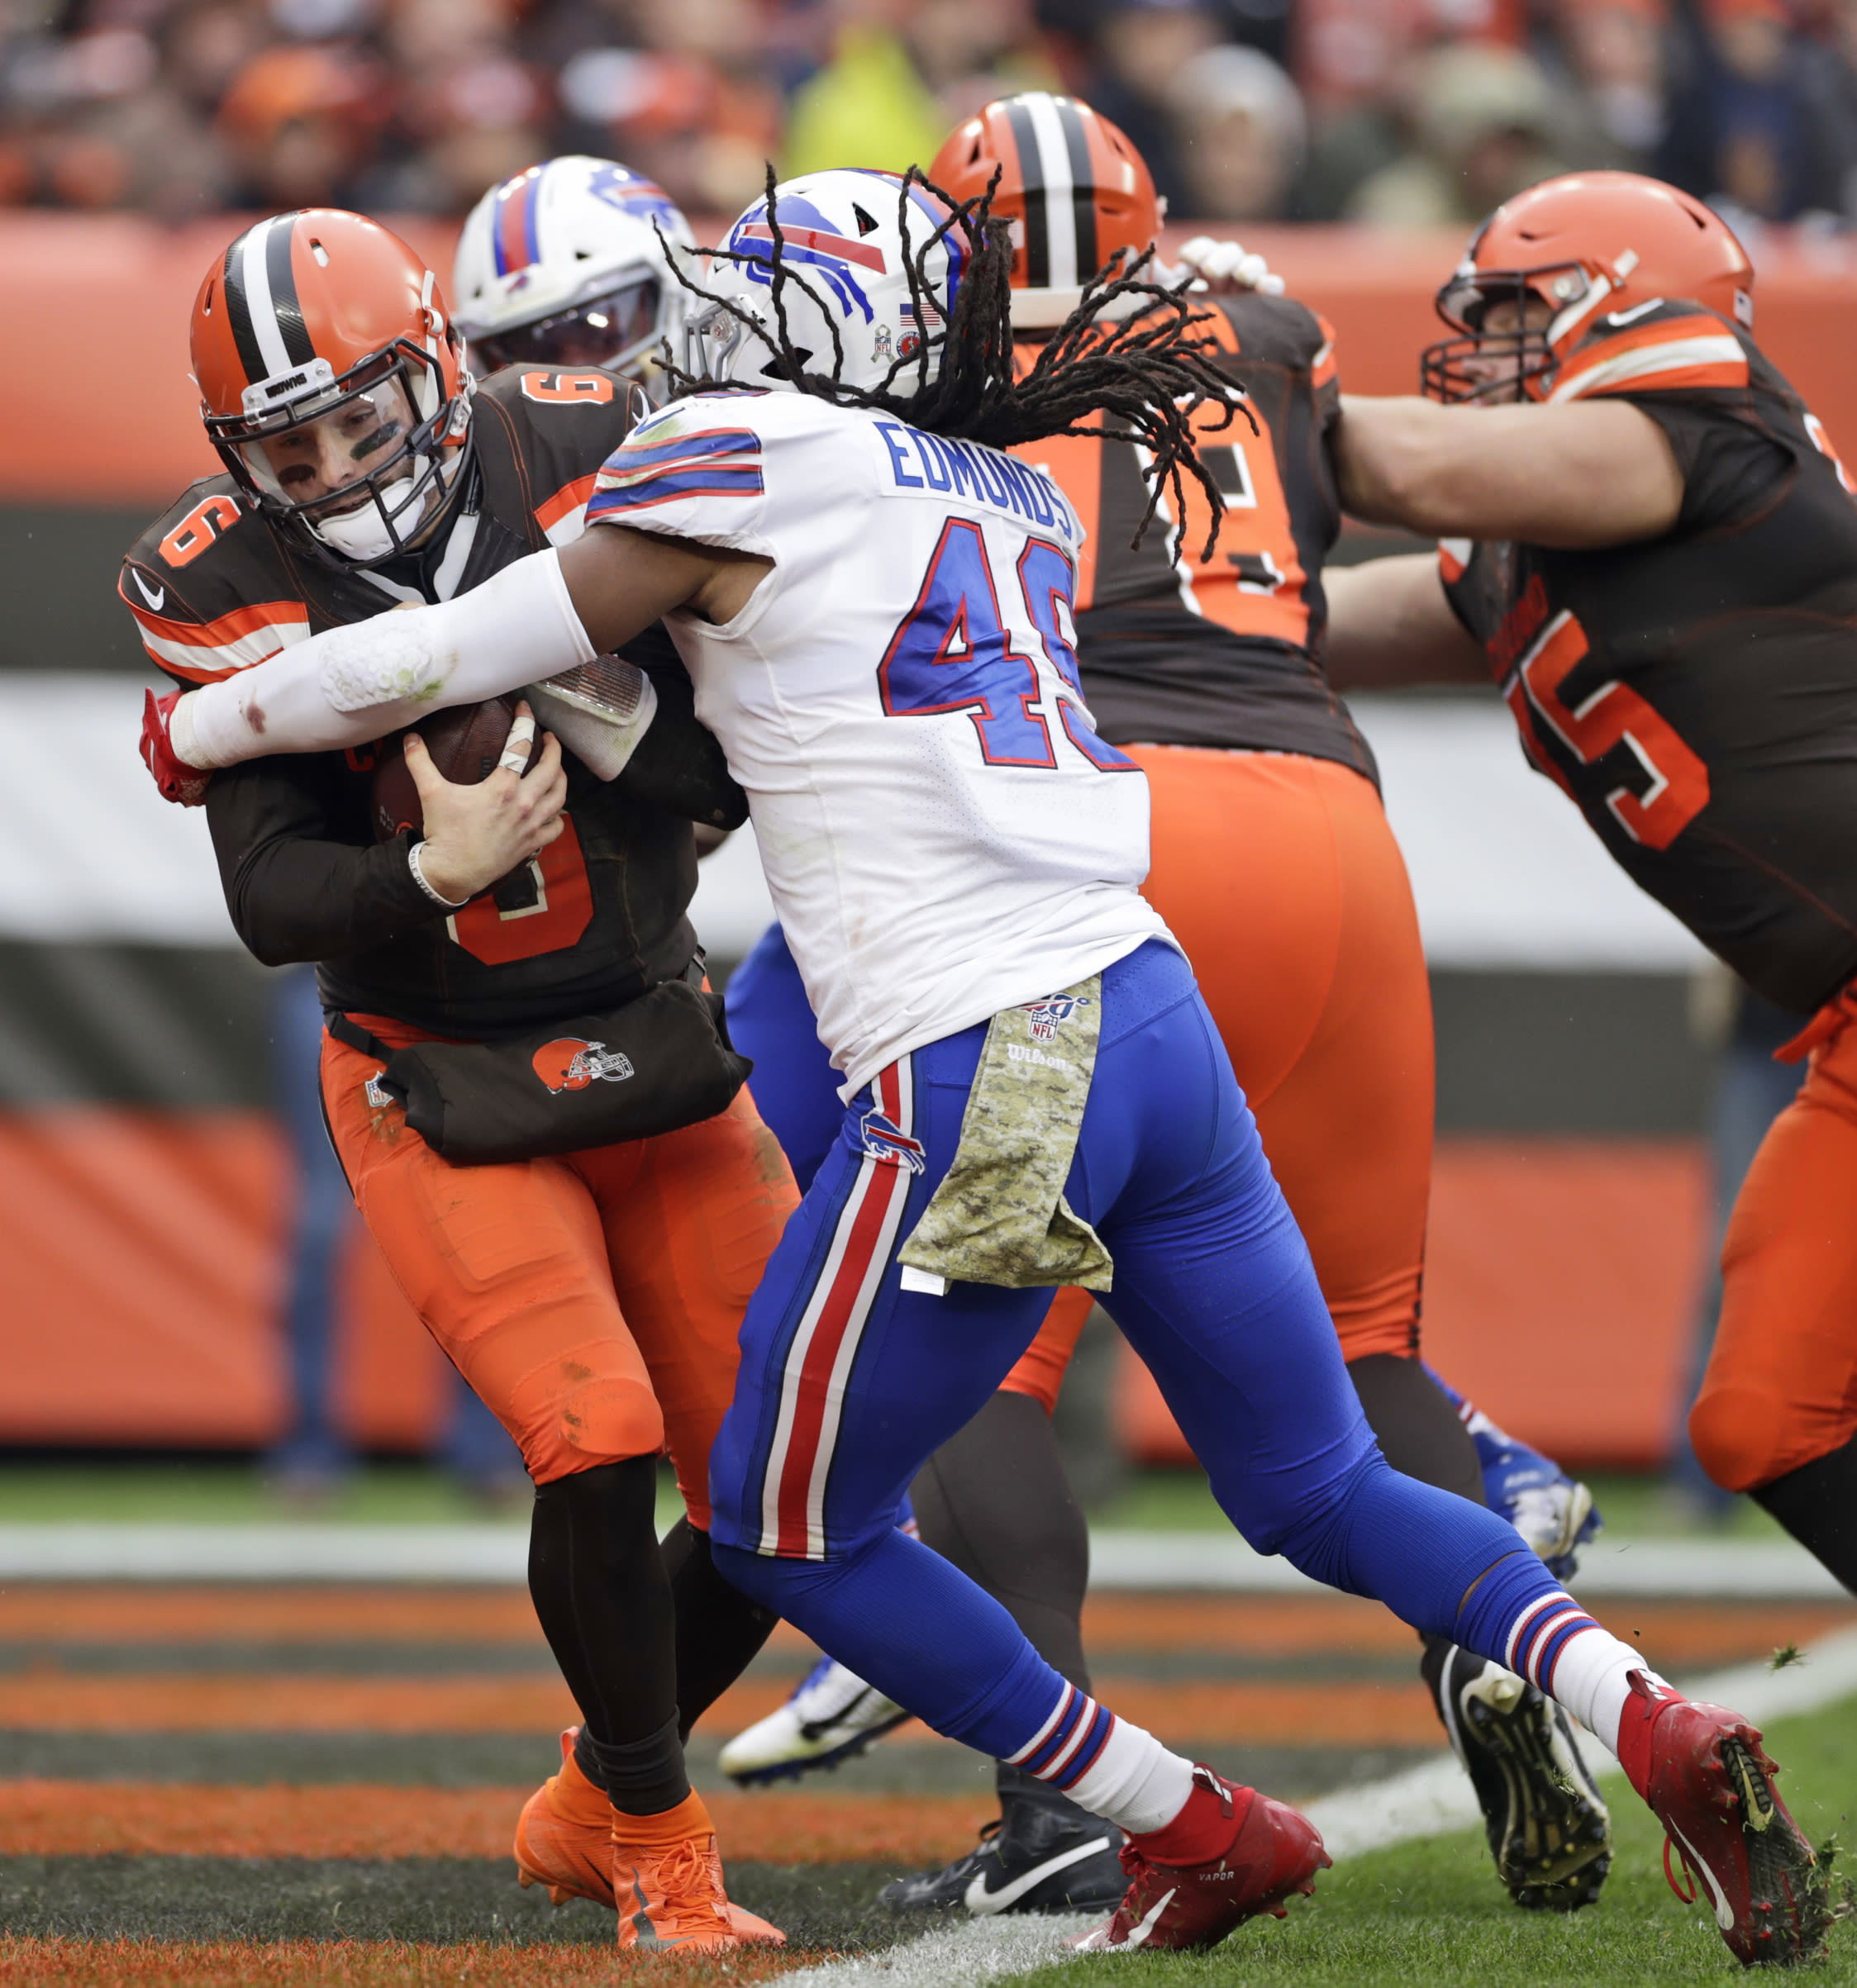 Cleveland Browns quarterback Baker Mayfield (6) is stopped by Buffalo Bills middle linebacker Tremaine Edmunds (49) for a safety during the second half of an NFL football game, Sunday, Nov. 10, 2019, in Cleveland. (AP Photo/Ron Schwane)